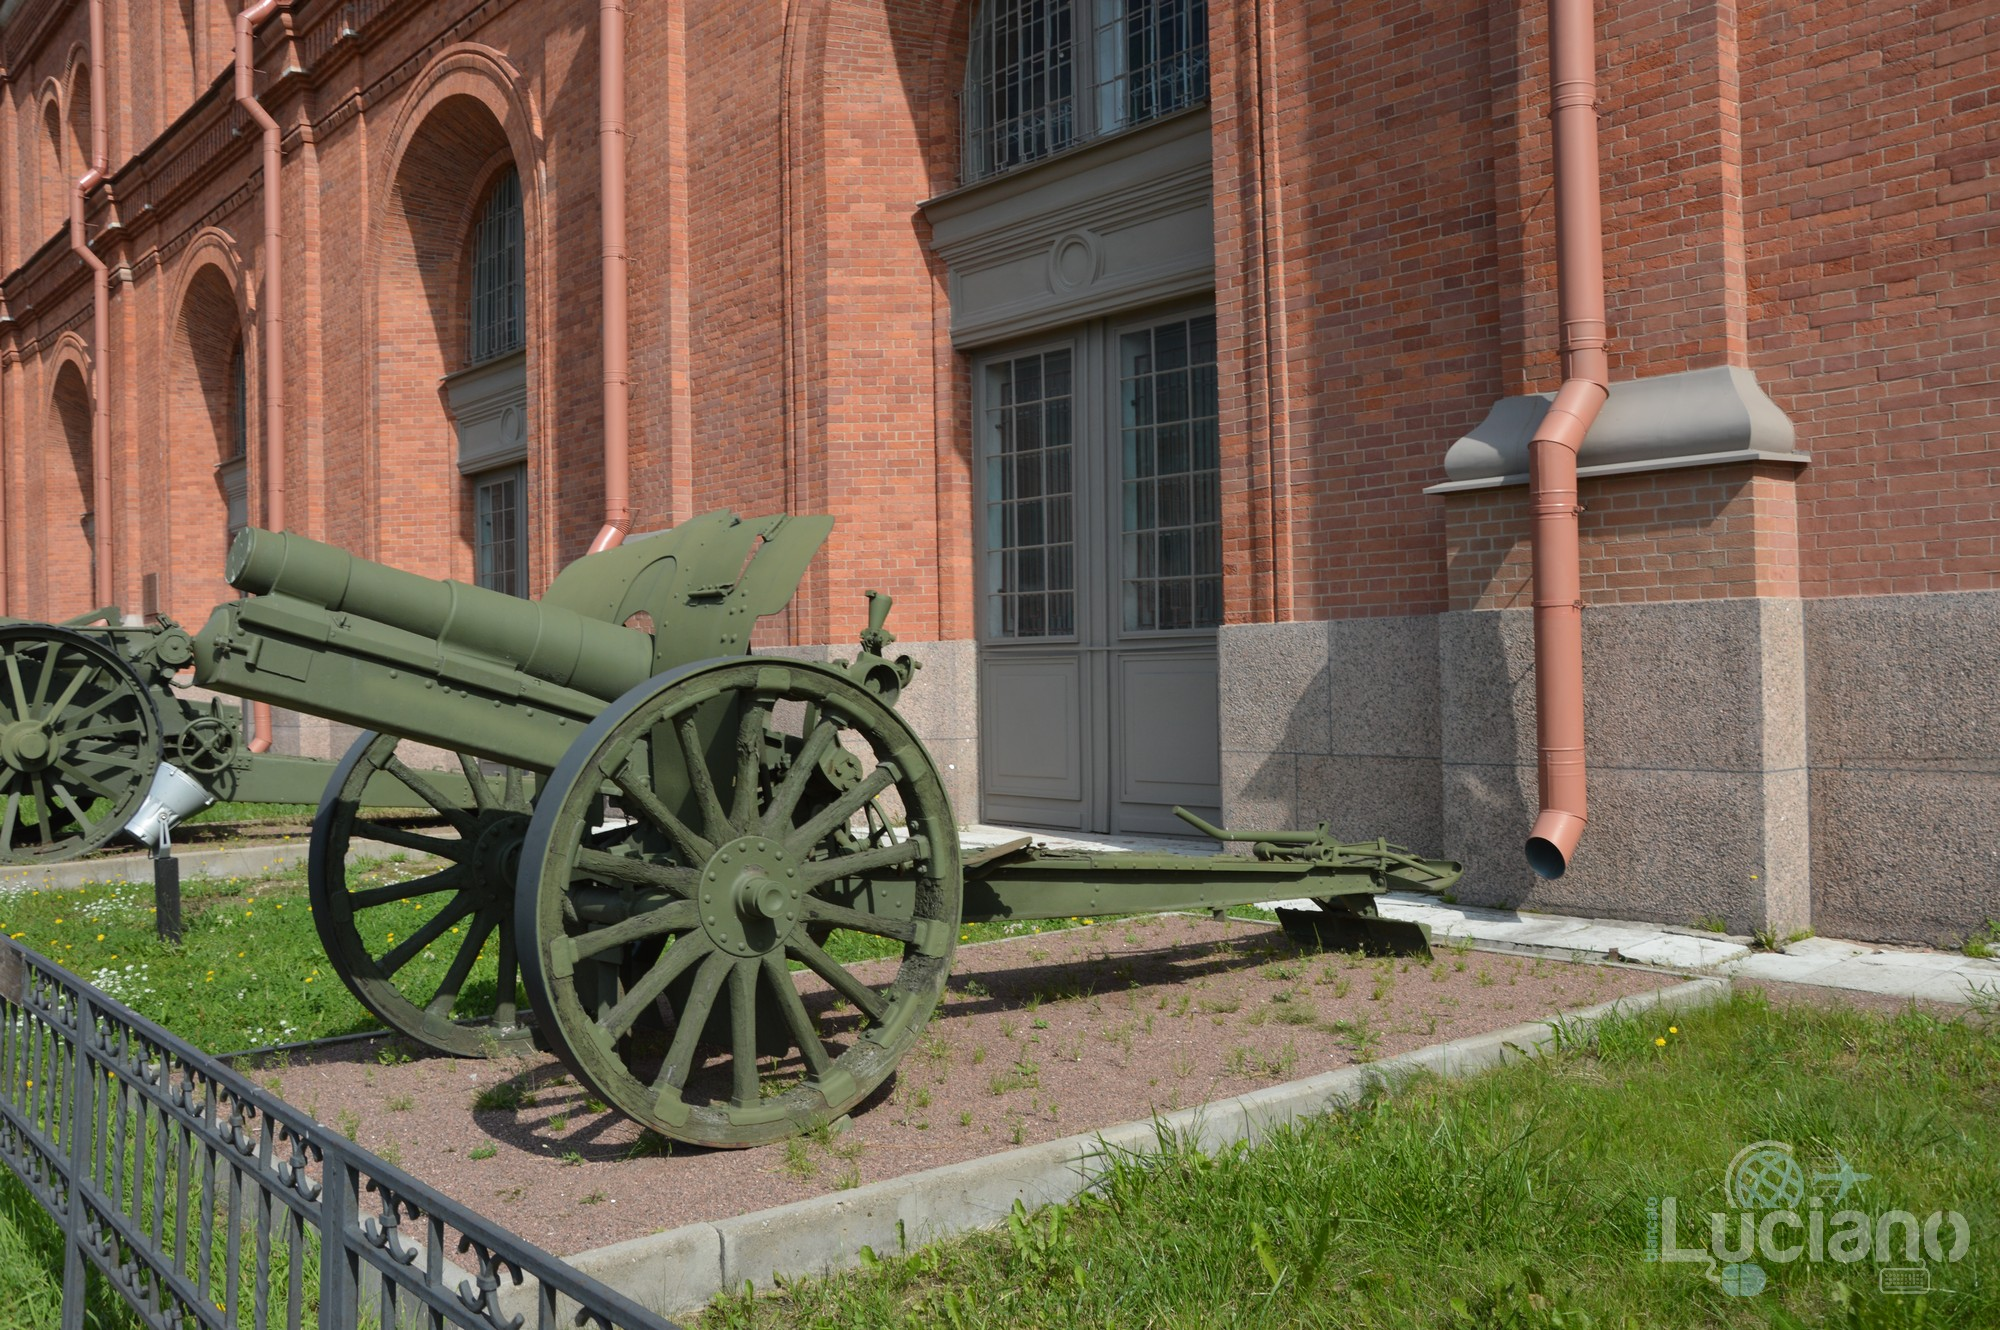 Military-Historical-Museum-of-Artillery-Engineer-and-Signal-Corps-St-Petersburg-Russia-Luciano-Blancato- (25)